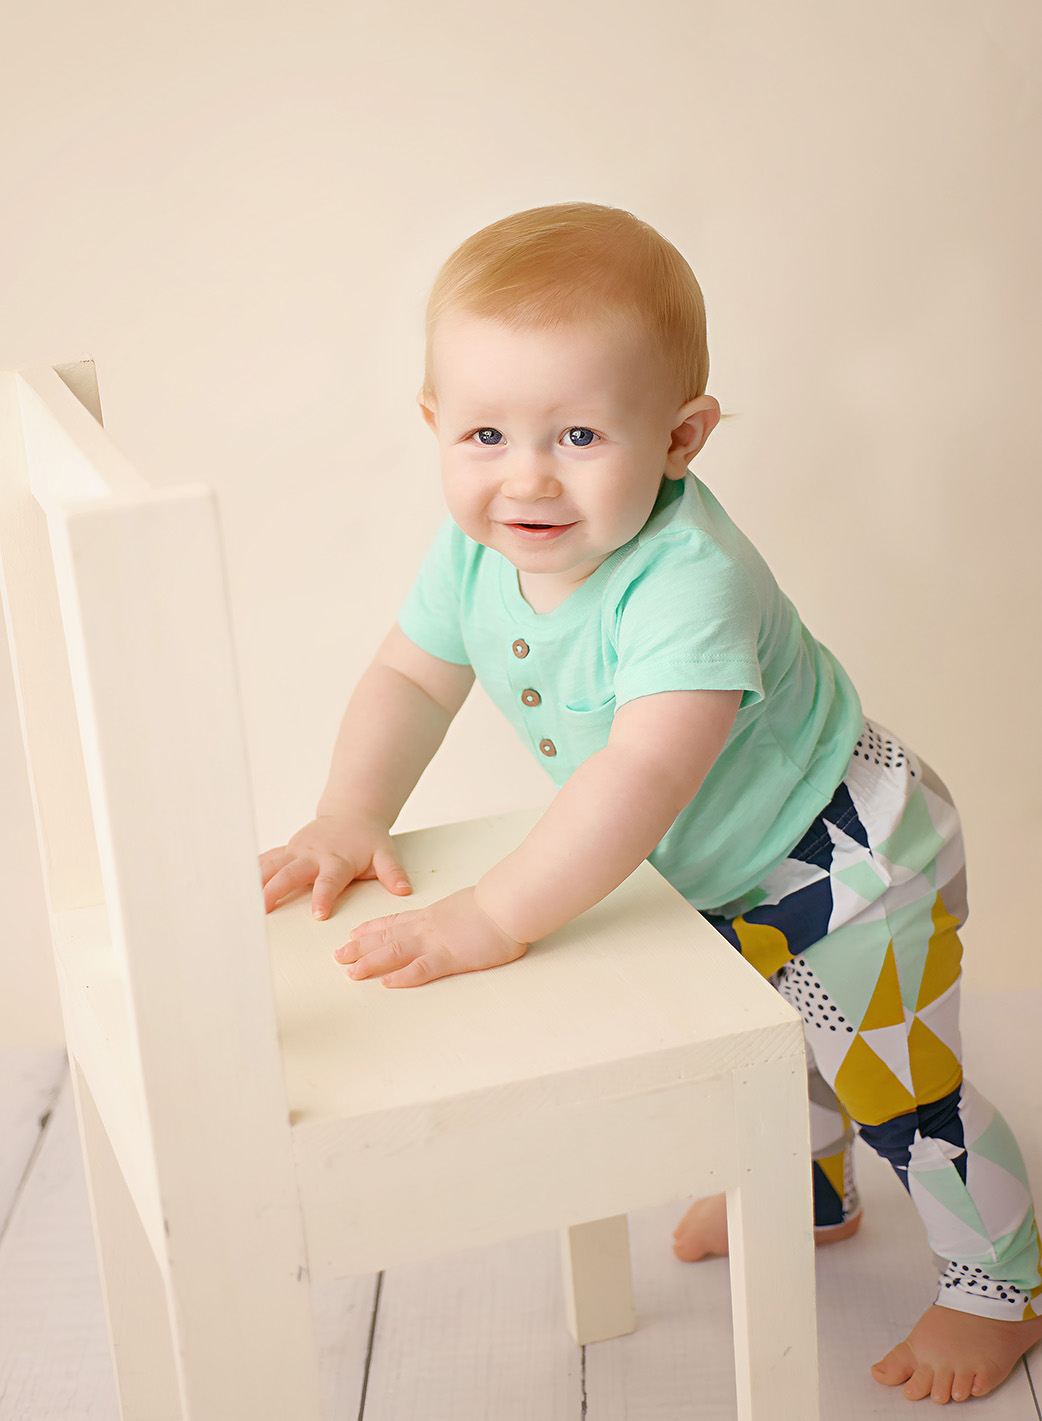 baby boy in mint shirt sitting on crate